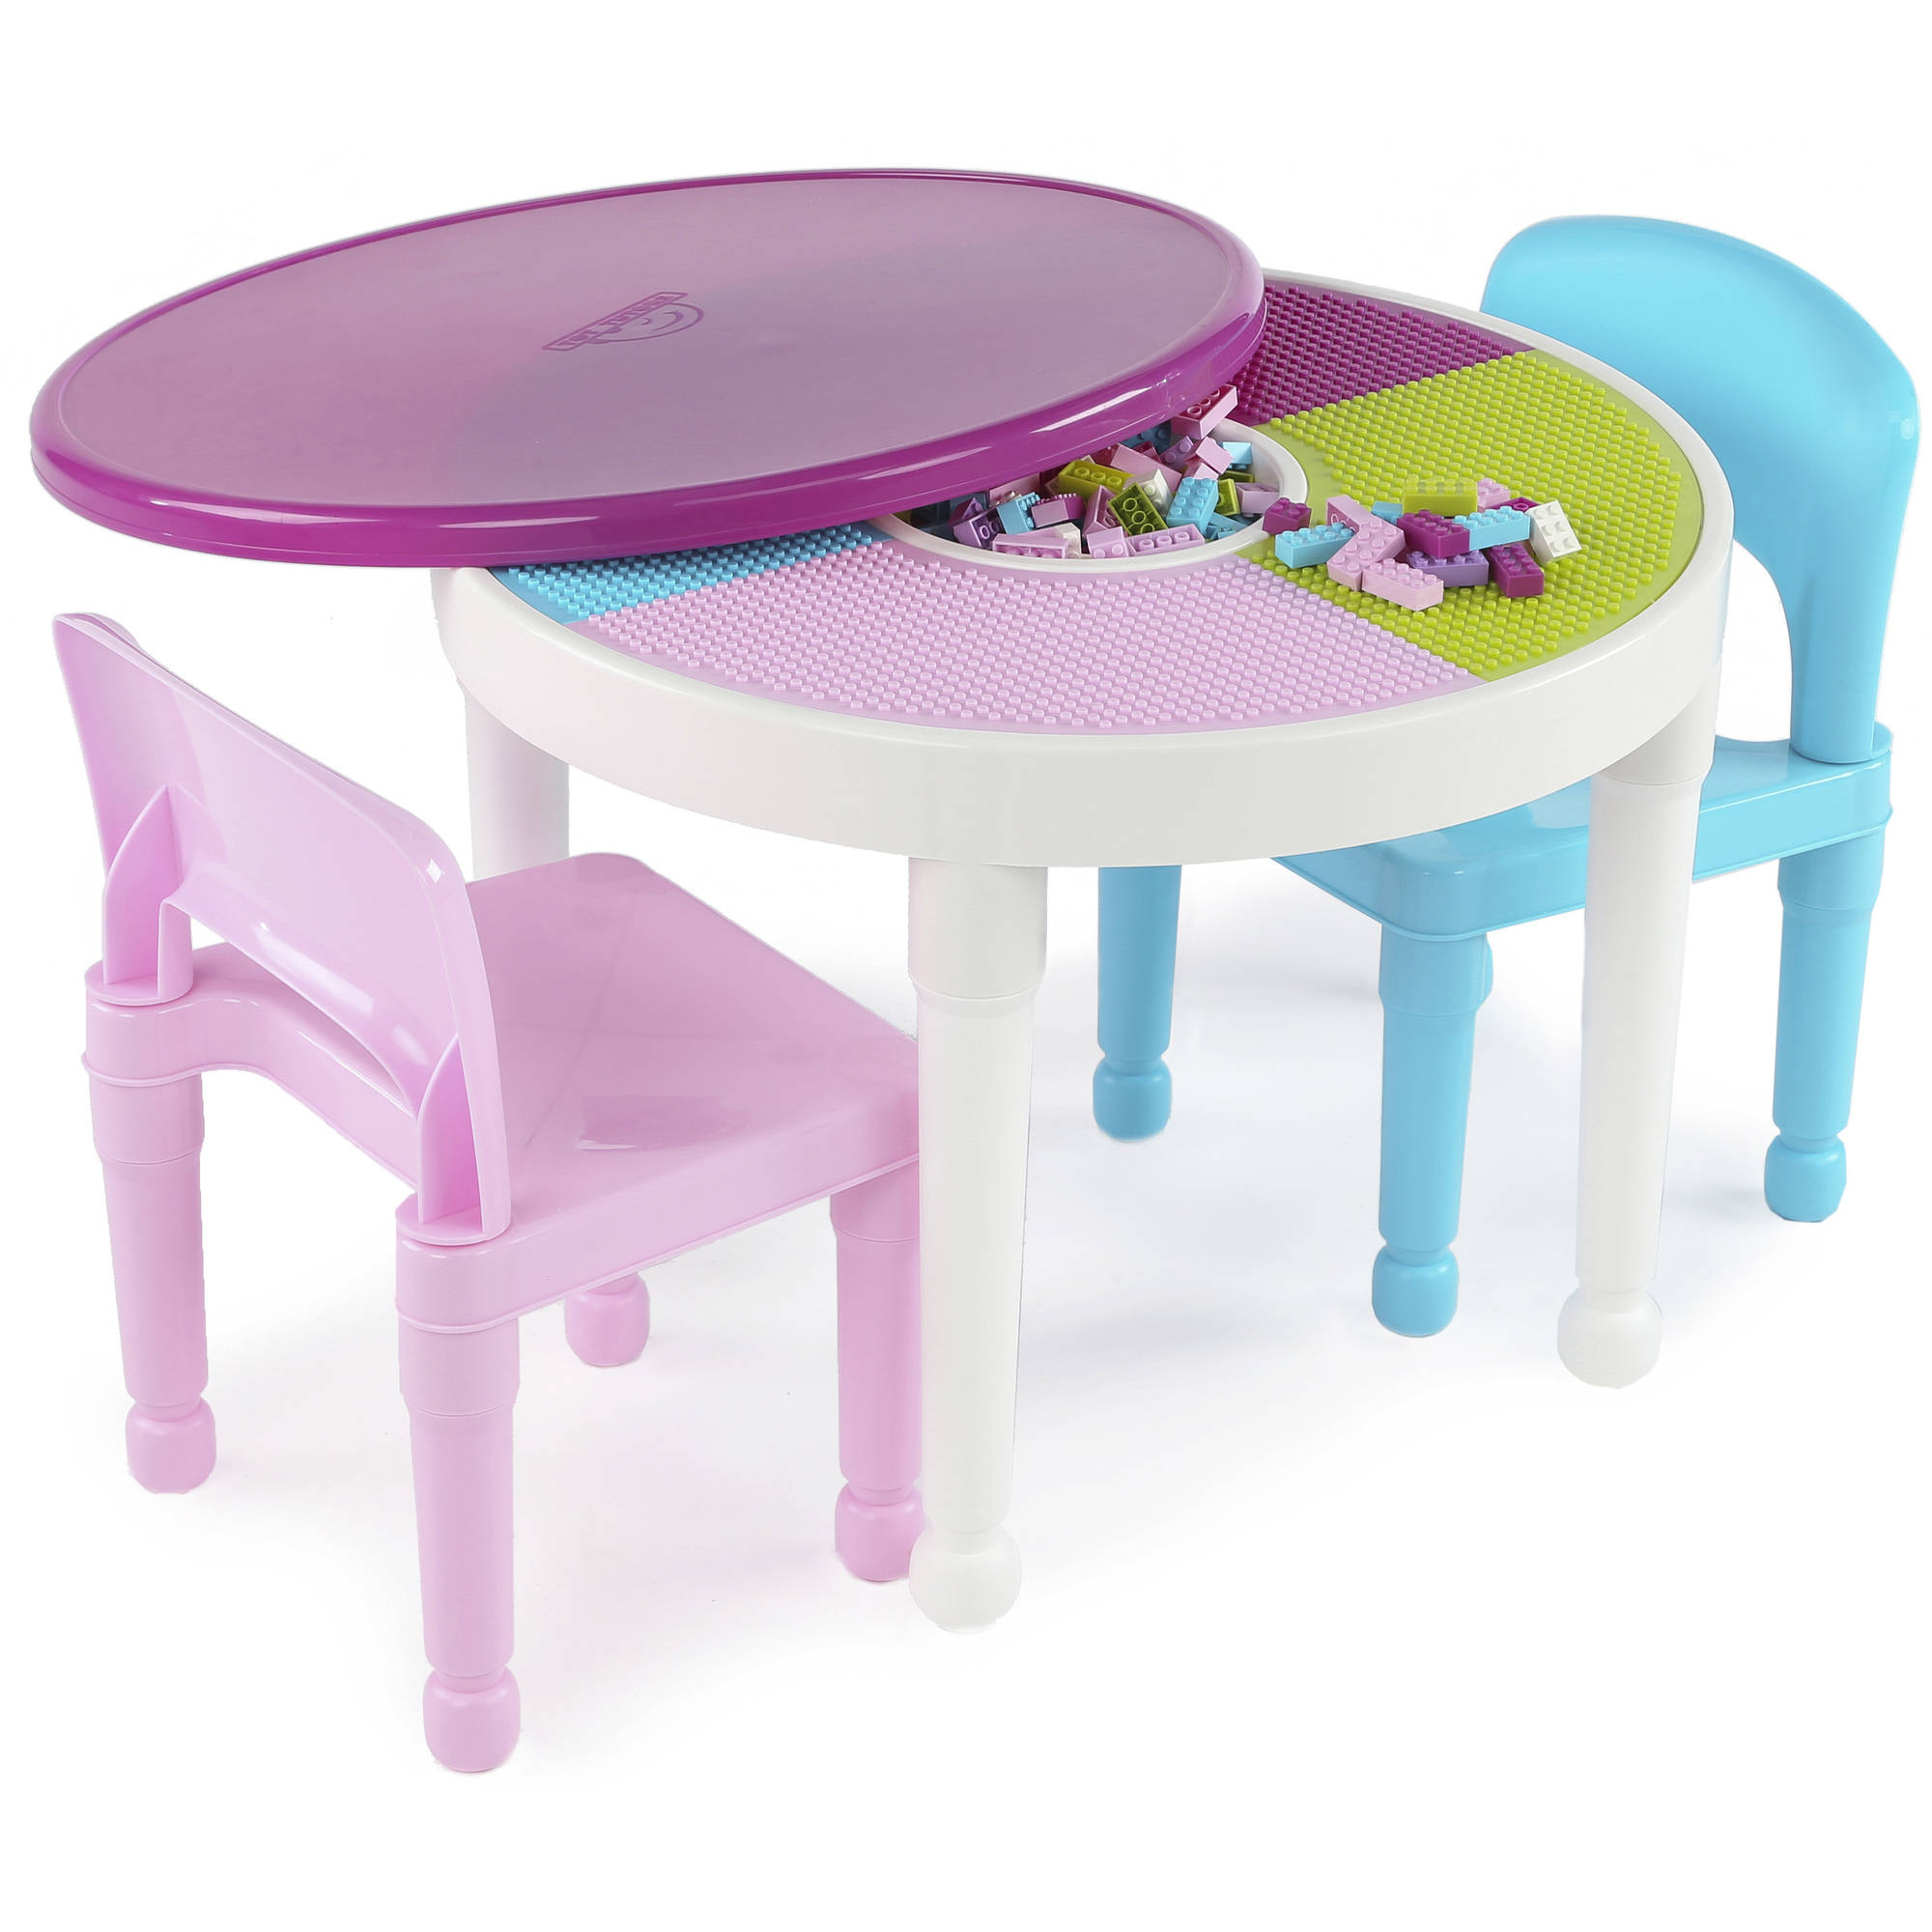 Tot Tutors Kids 2 in 1 Plastic LEGO patible Activity Table and